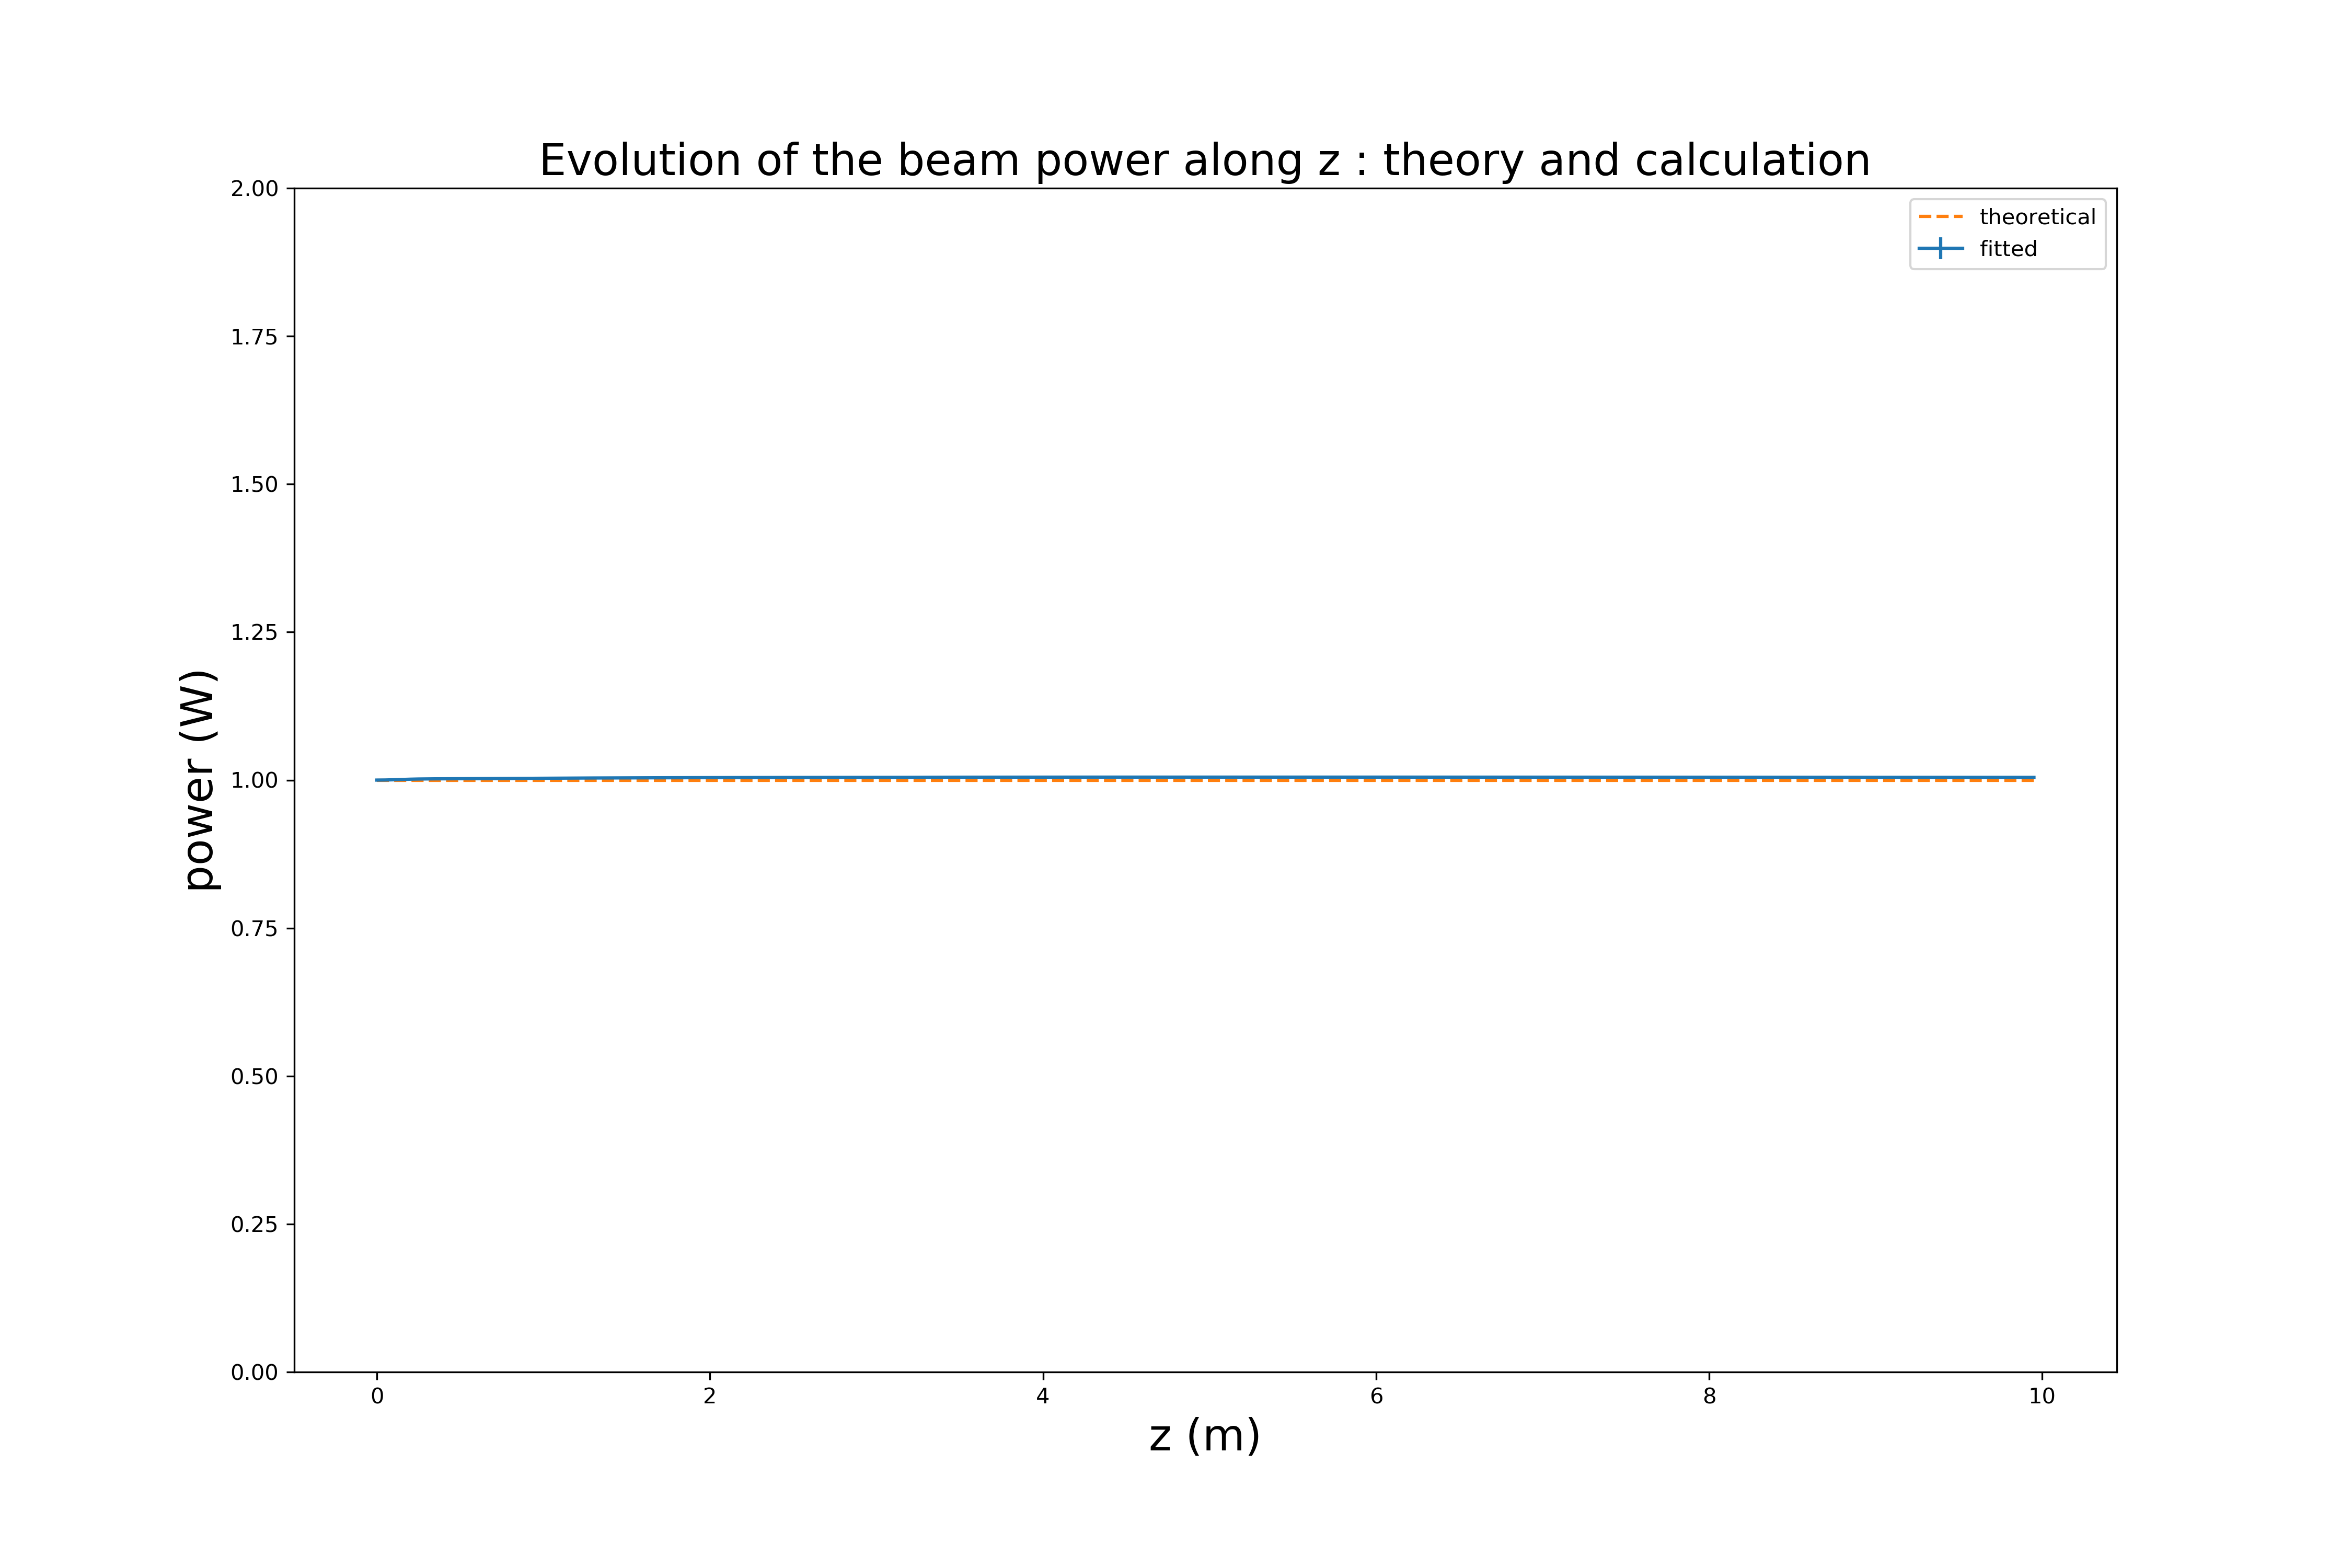 figures/CCCN/check_theory_power.png